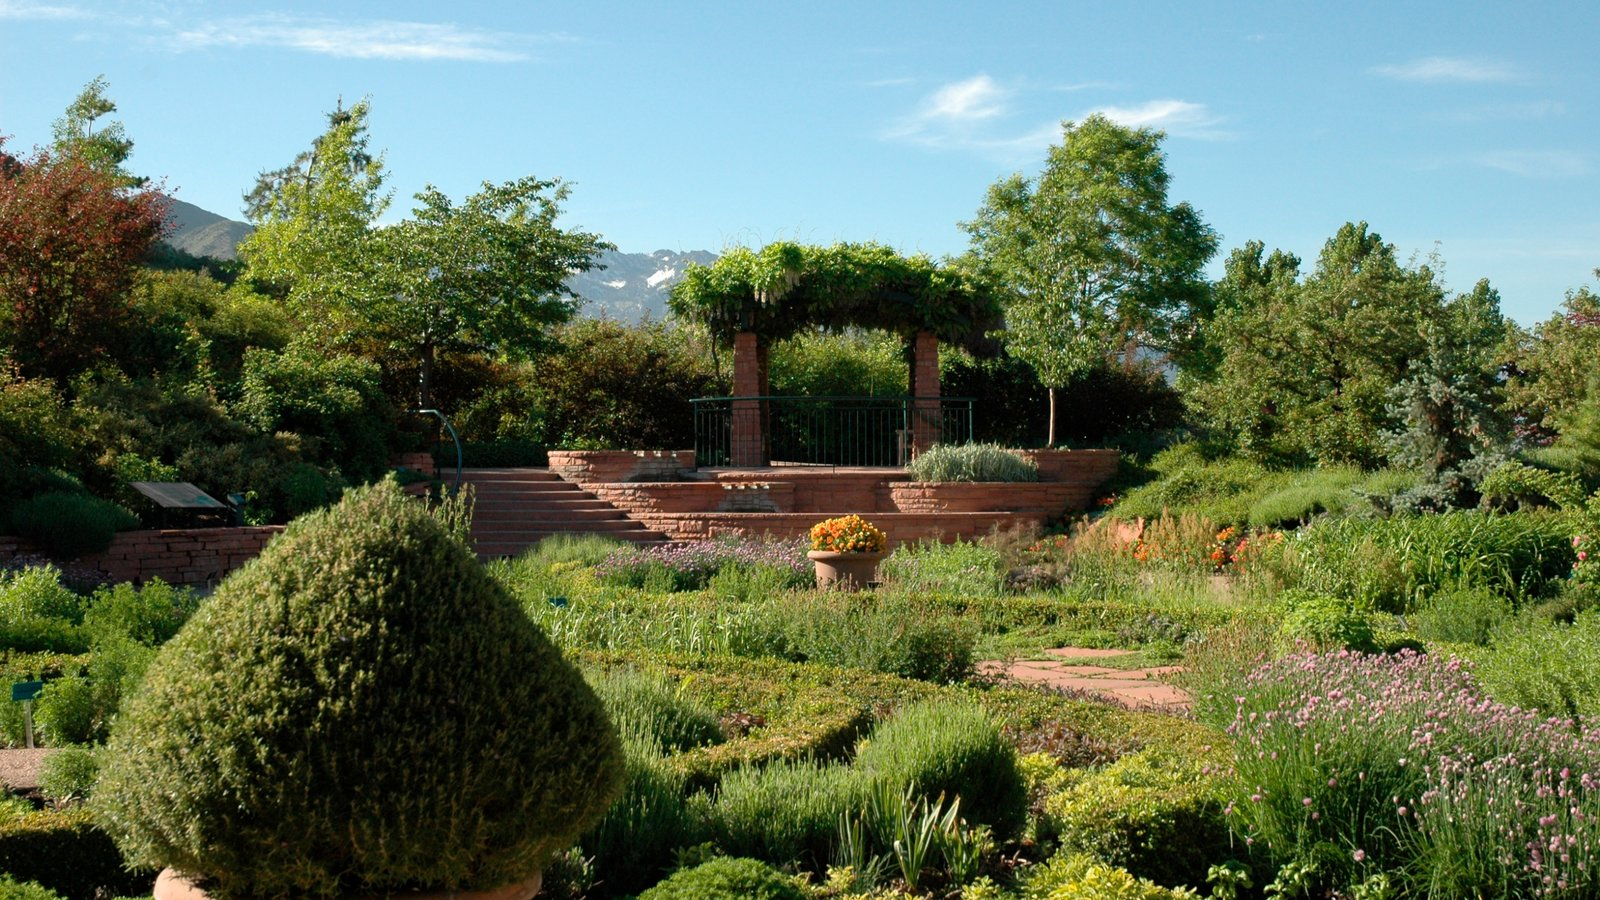 Red Butte Garden and Arboreteum showing a park